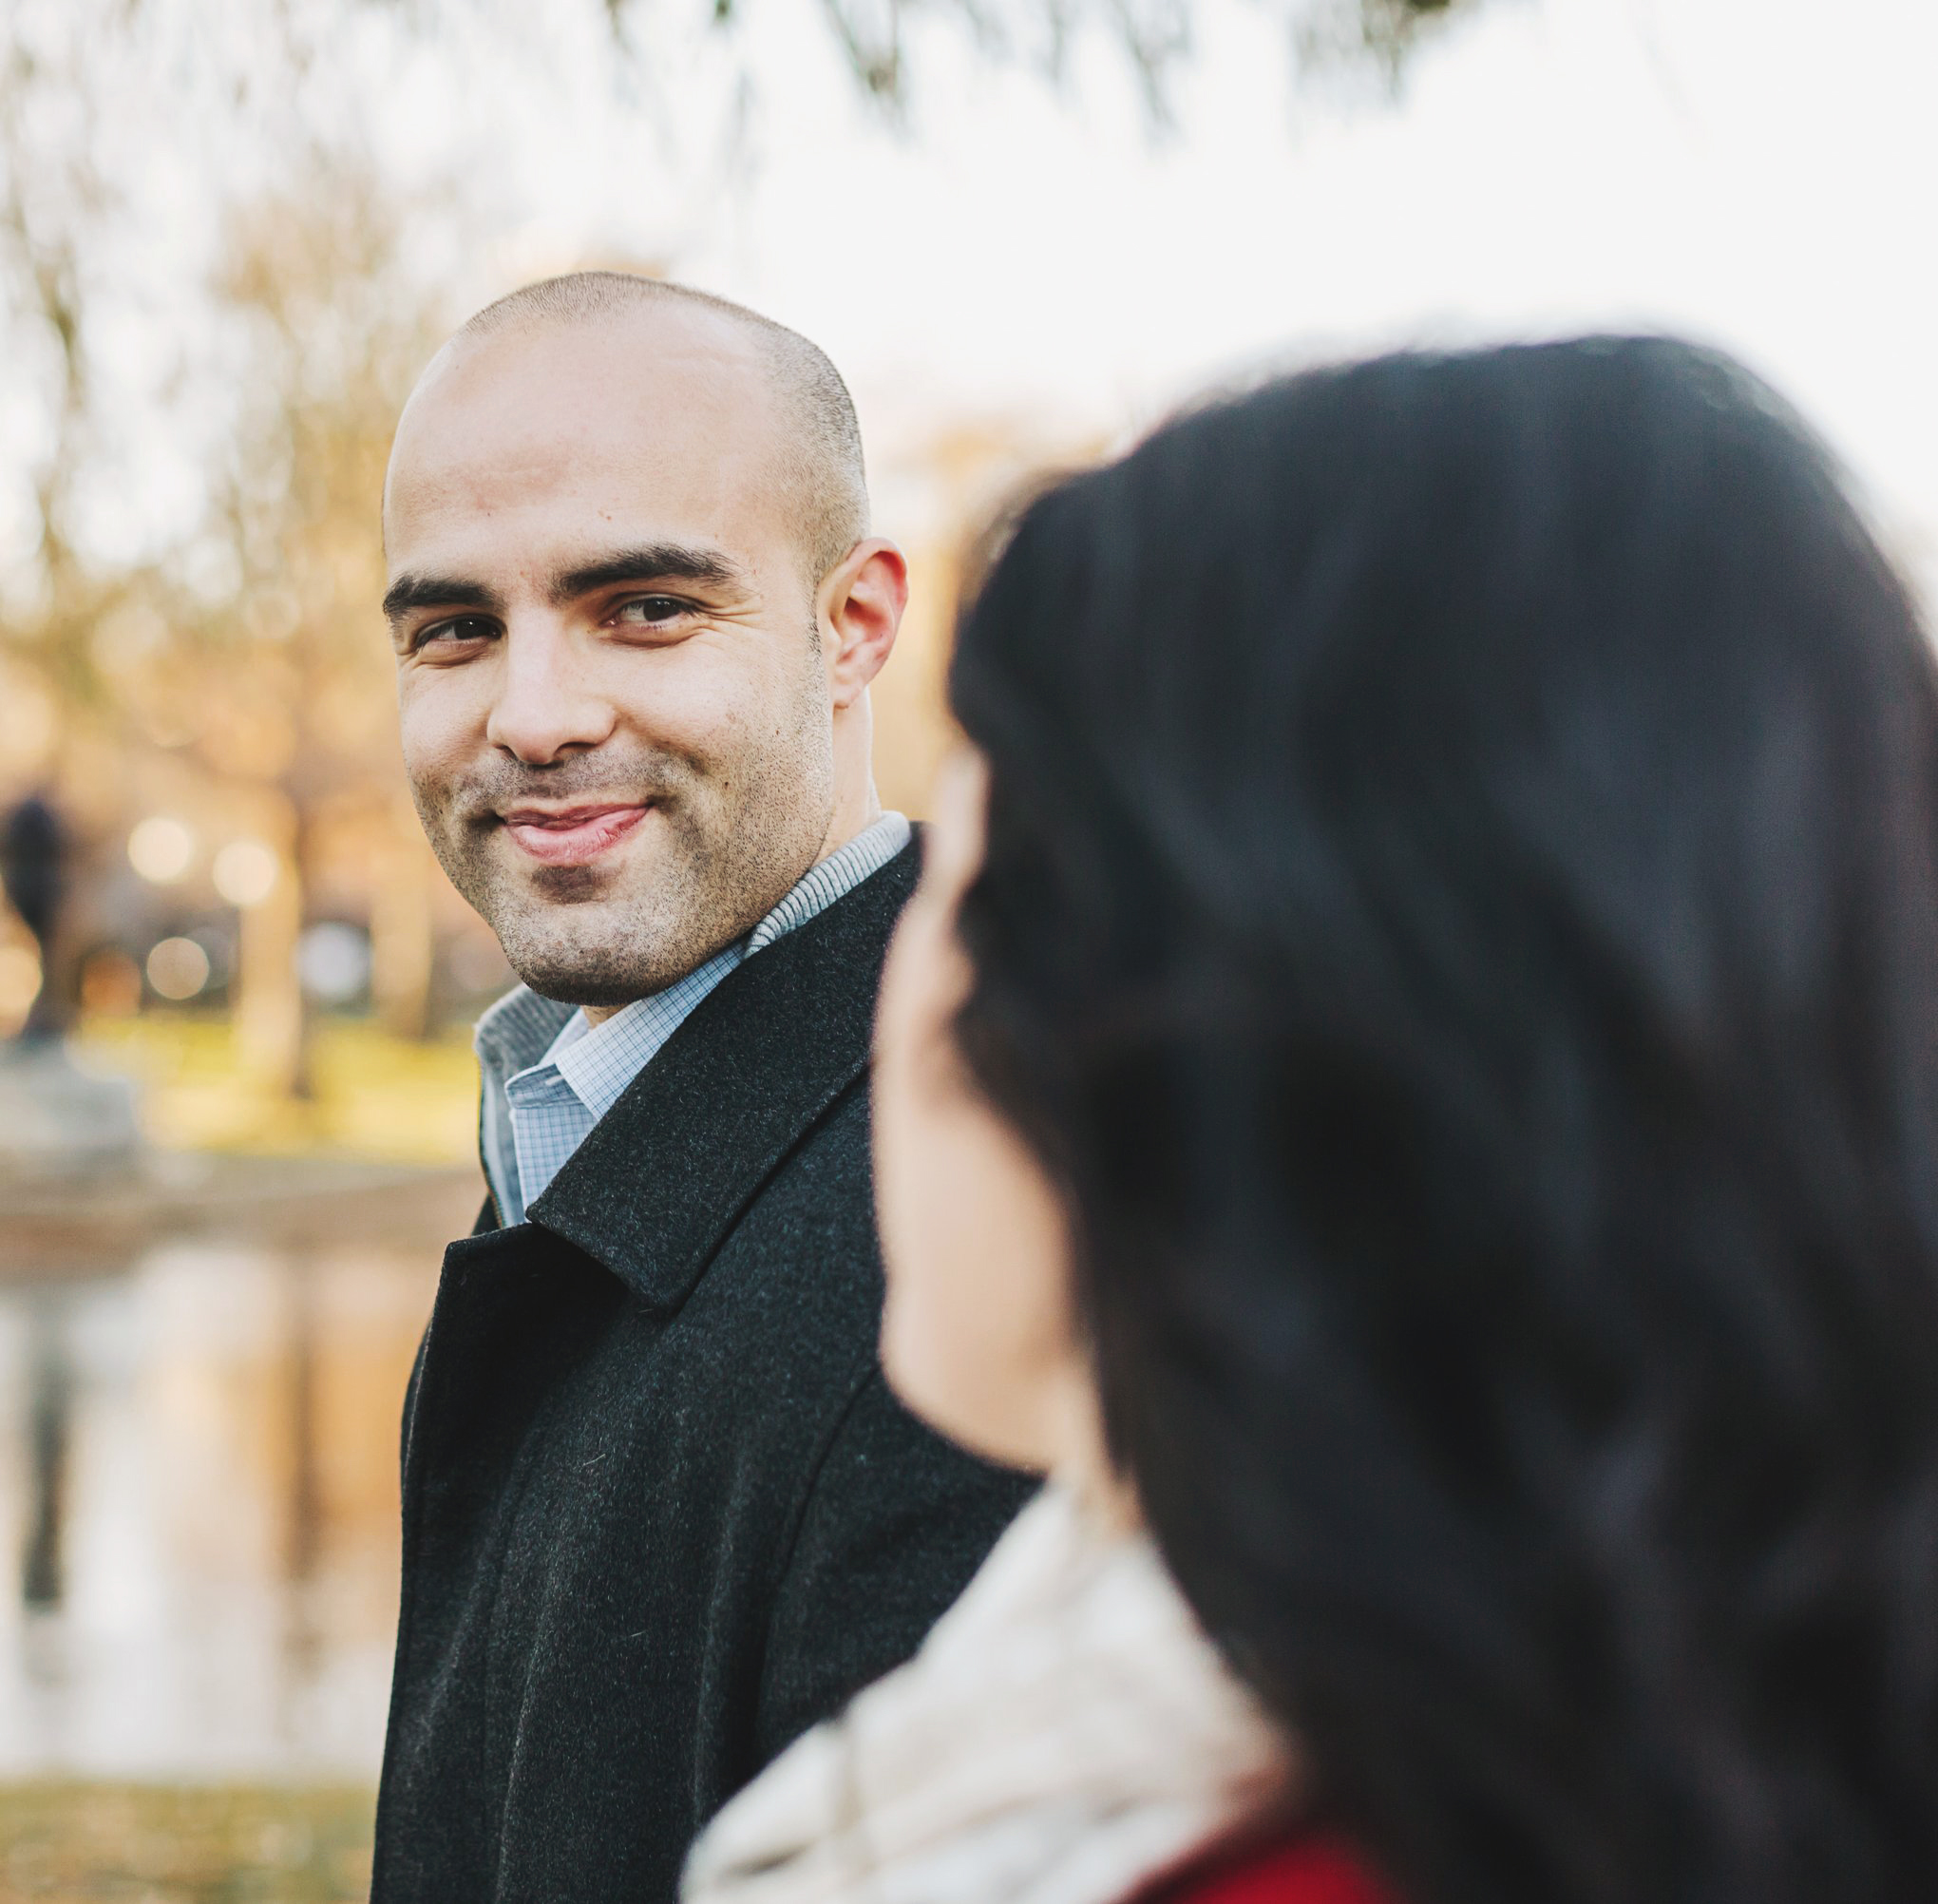 Boston_Public_Garden_Engagement-5.jpg